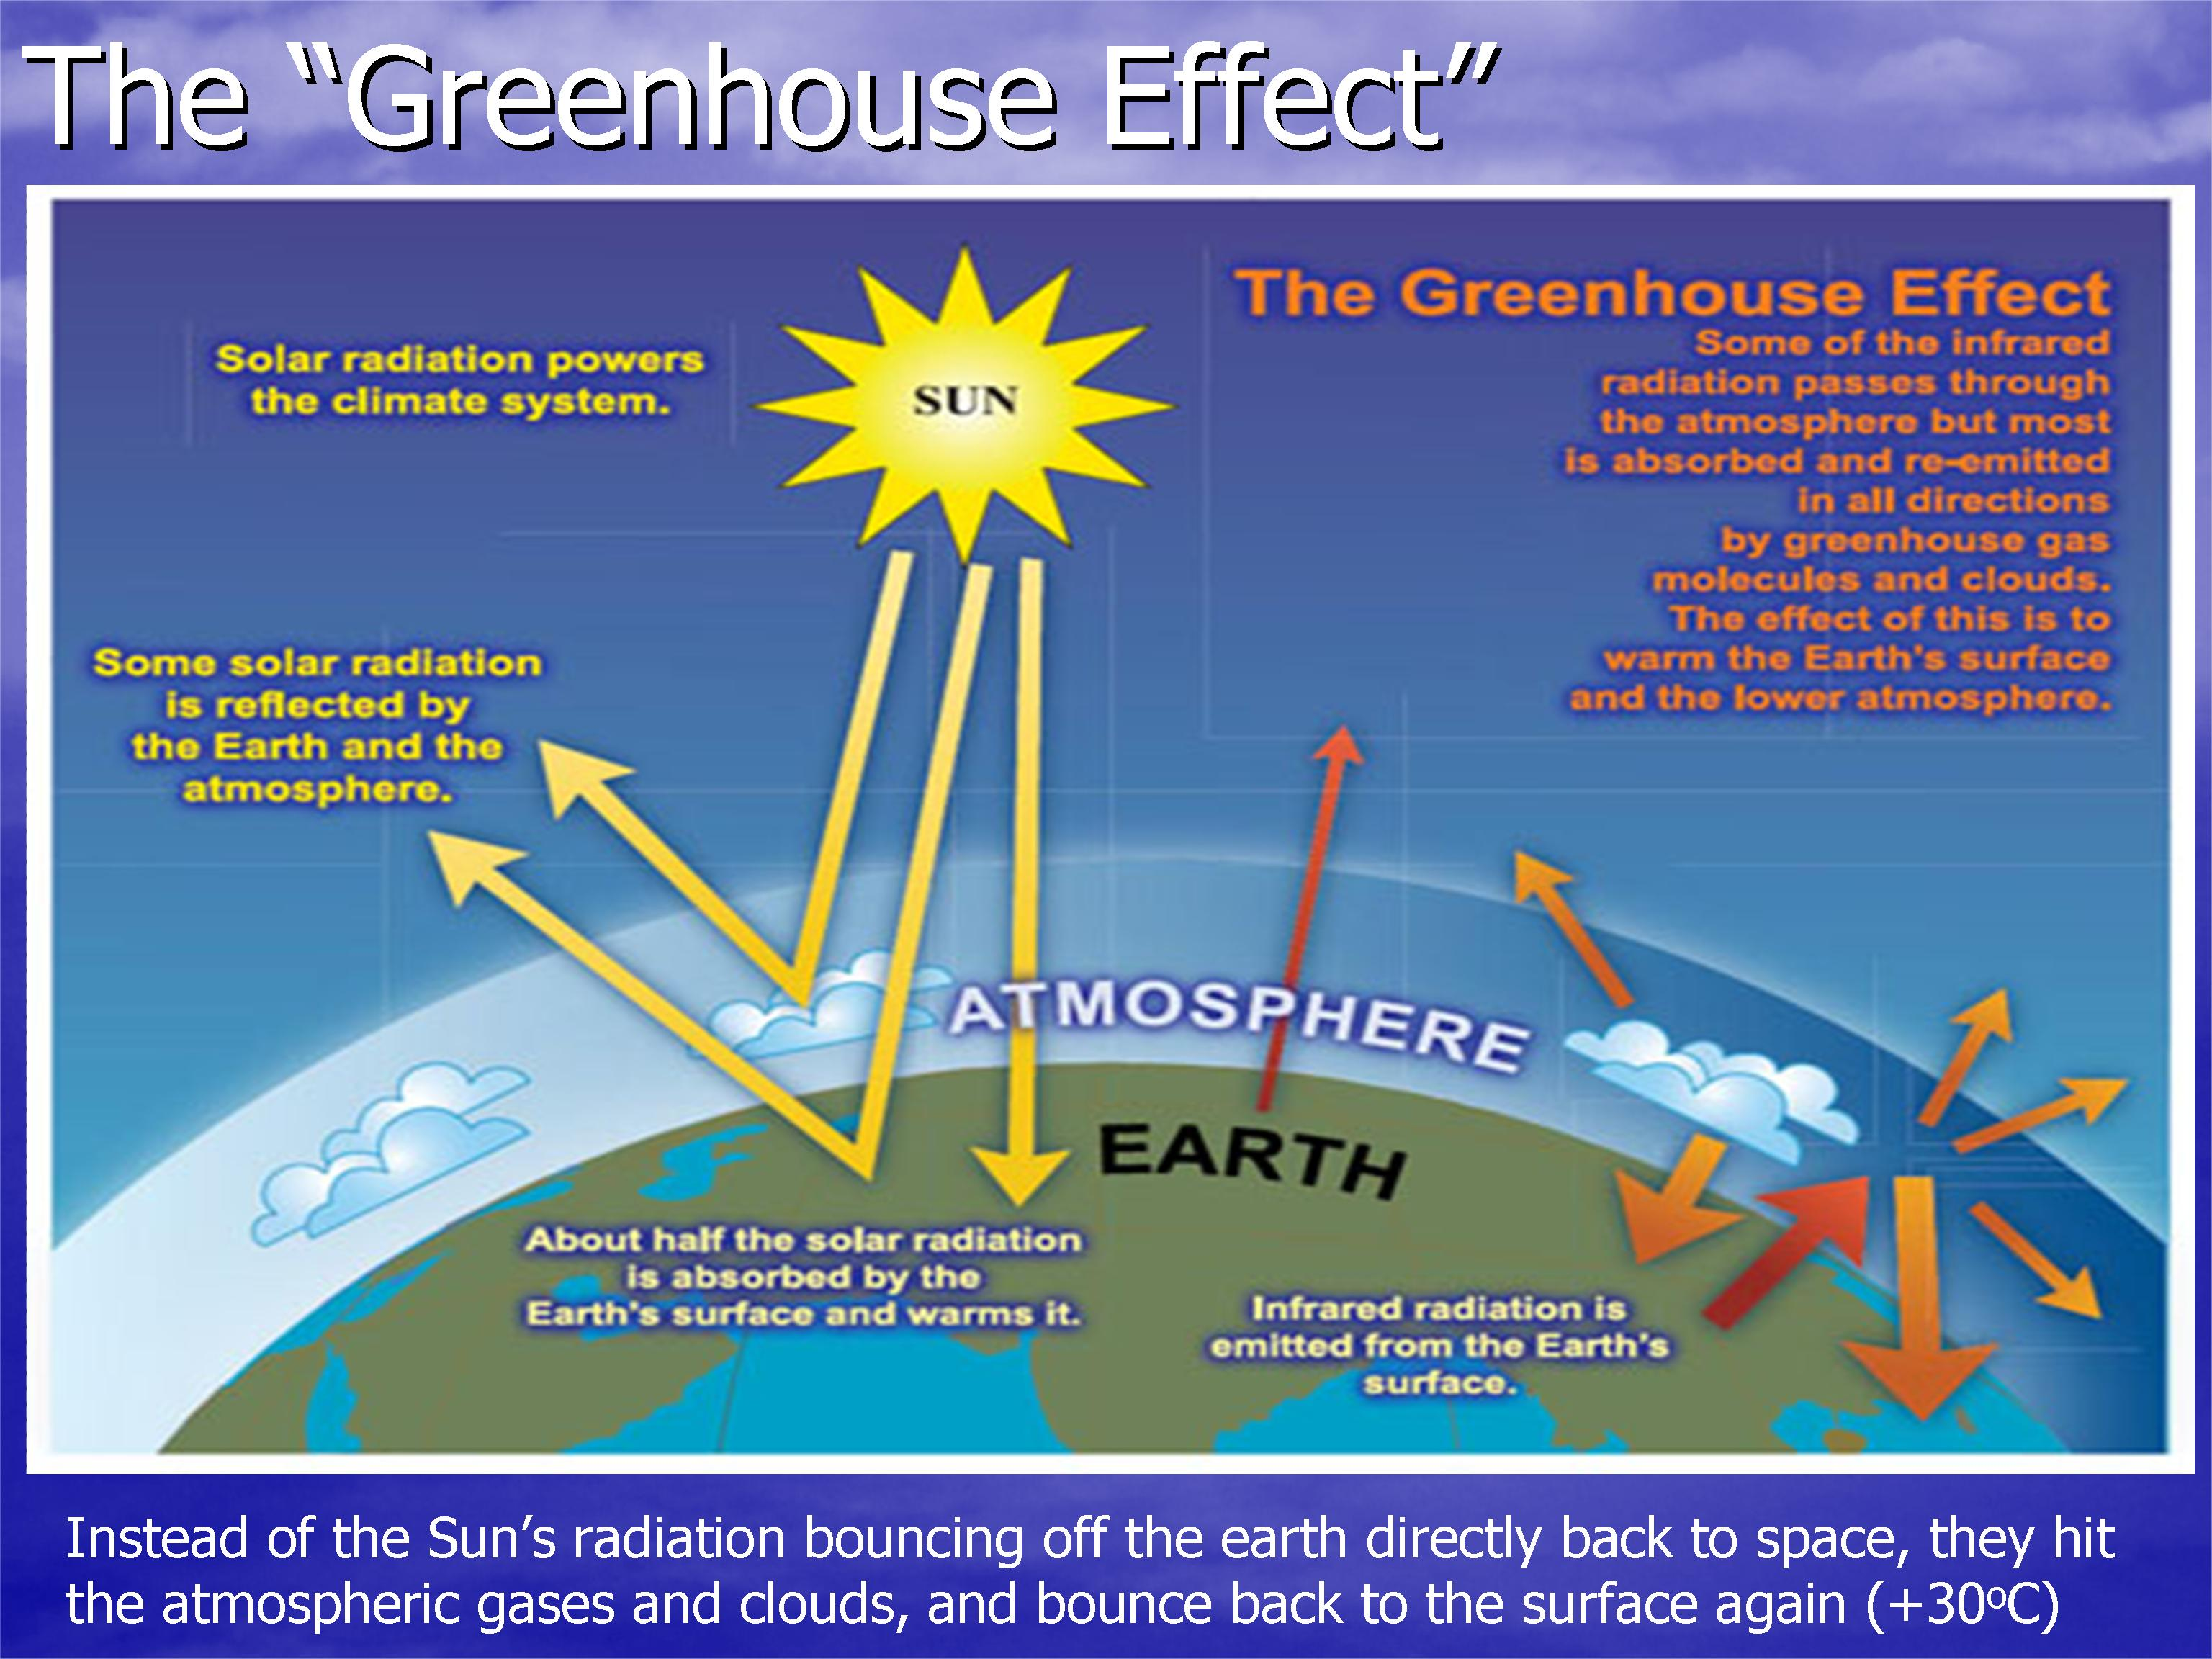 greenhouse effect thesis statement Well i need to get my thesis statement ready soon for my english classi am doing a  zimbiocom/the+greenhouse+effect/articles/4/metha.